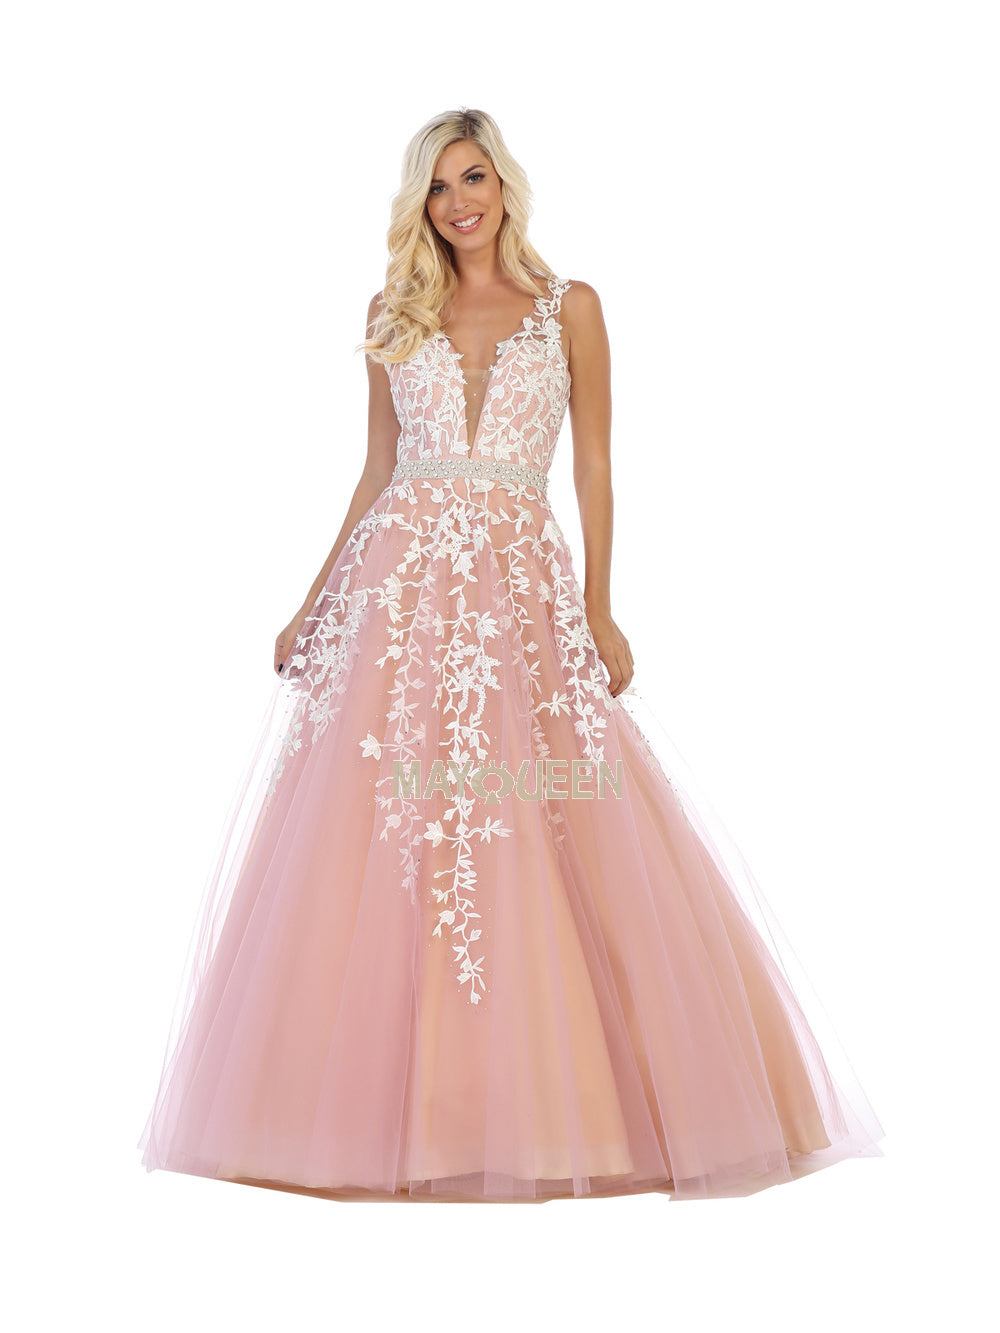 Mayqueen Size Chart E MQ 7613 - A-Line Embroidered Tulle Ball Gown - Diggz Prom